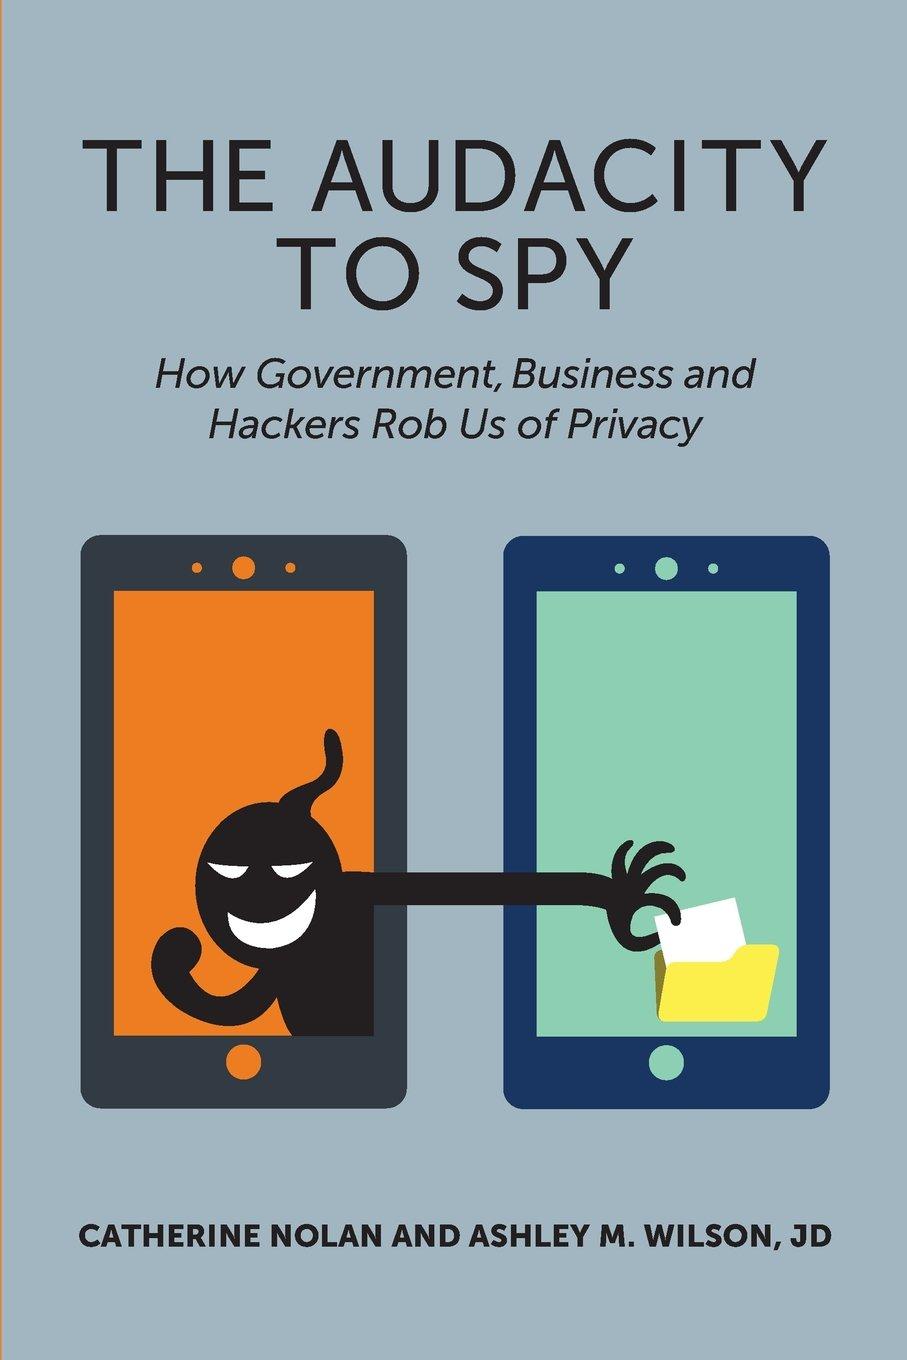 The Audacity to Spy: How Government, Business, and Hackers Rob Us of Privacy PDF